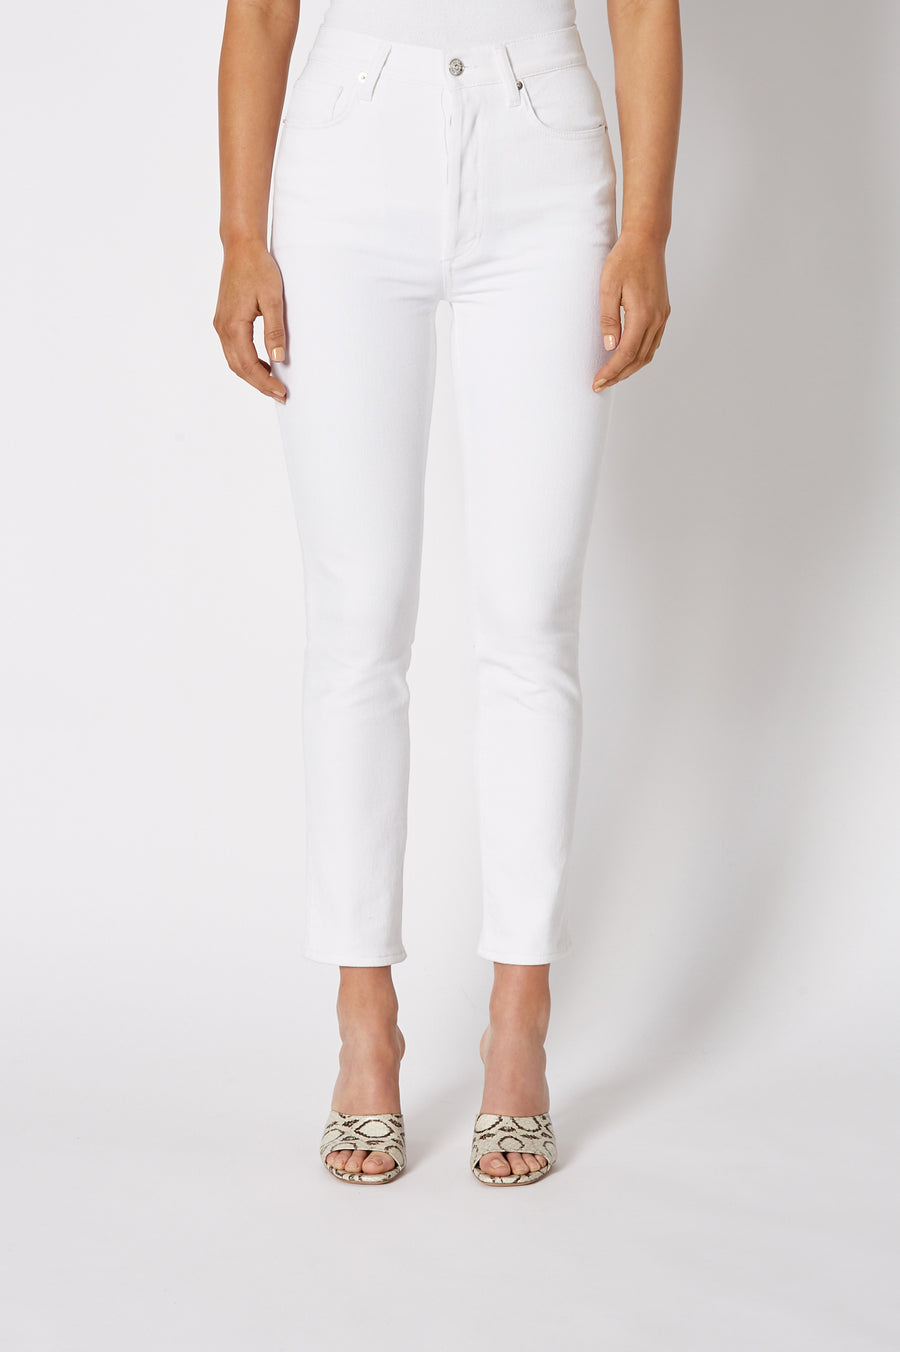 Waist accentuating, white denim jeans with just enough stretch for a feminine fit